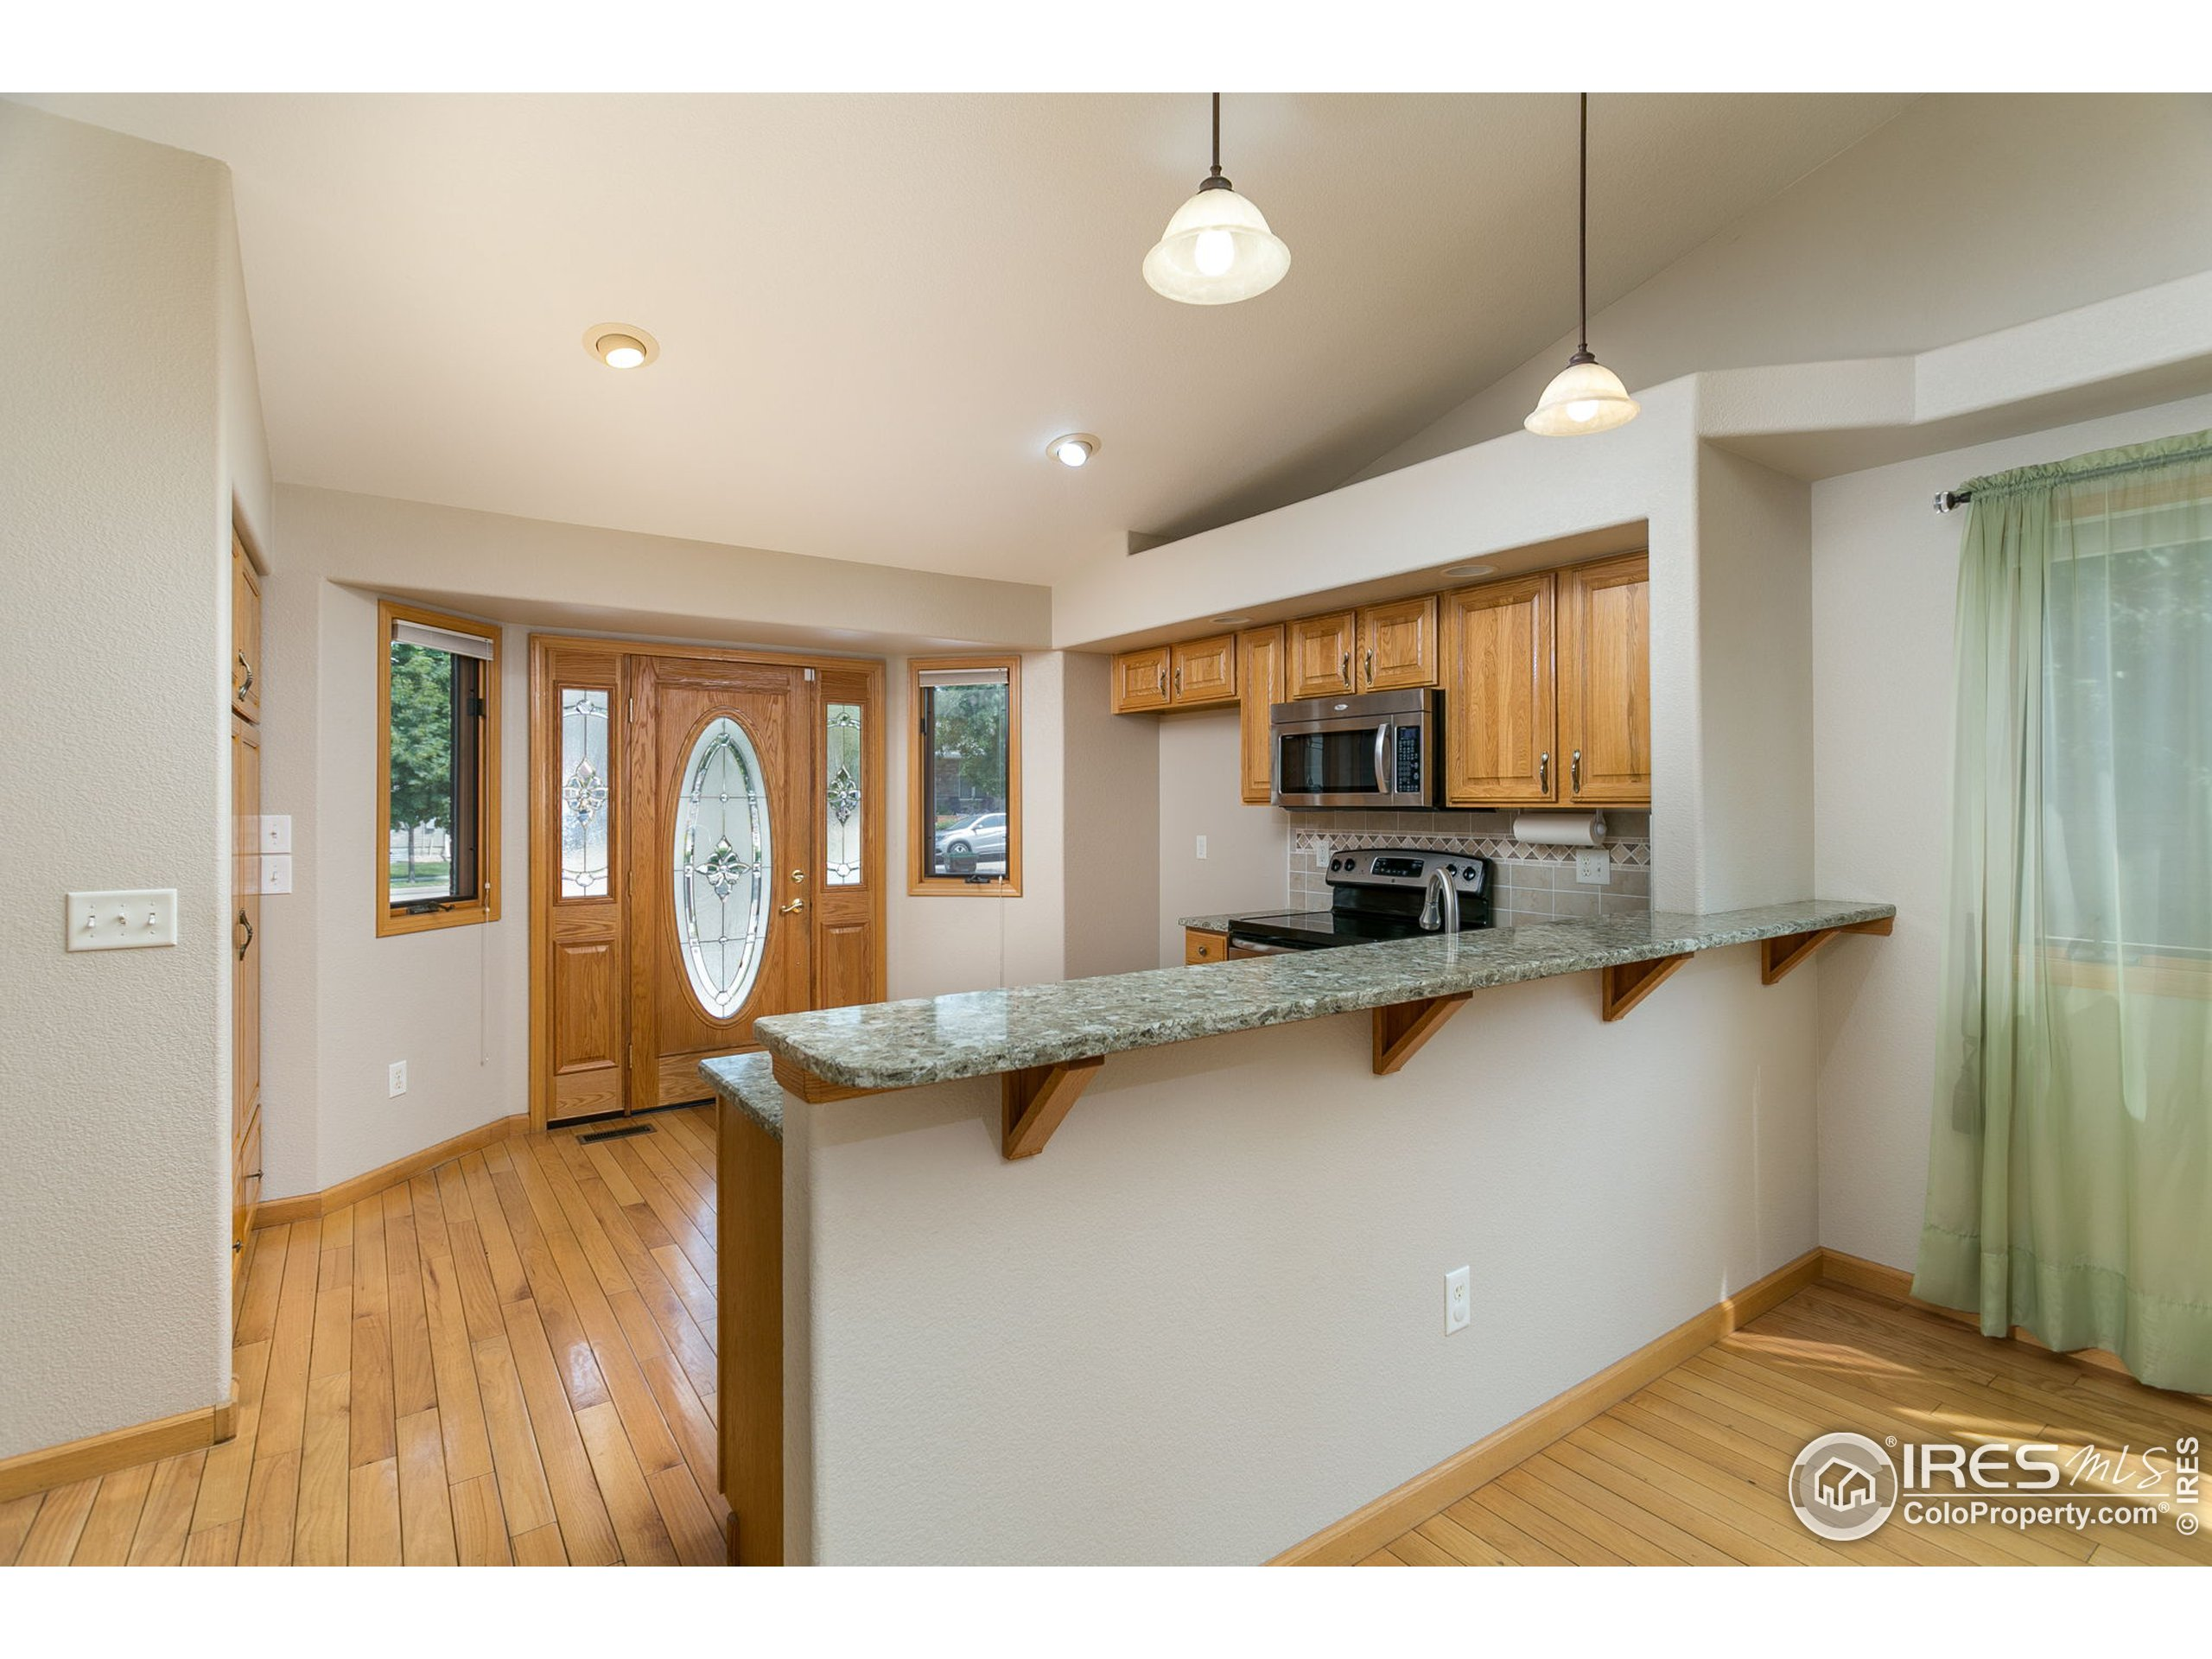 Kitchen flows into Dining room